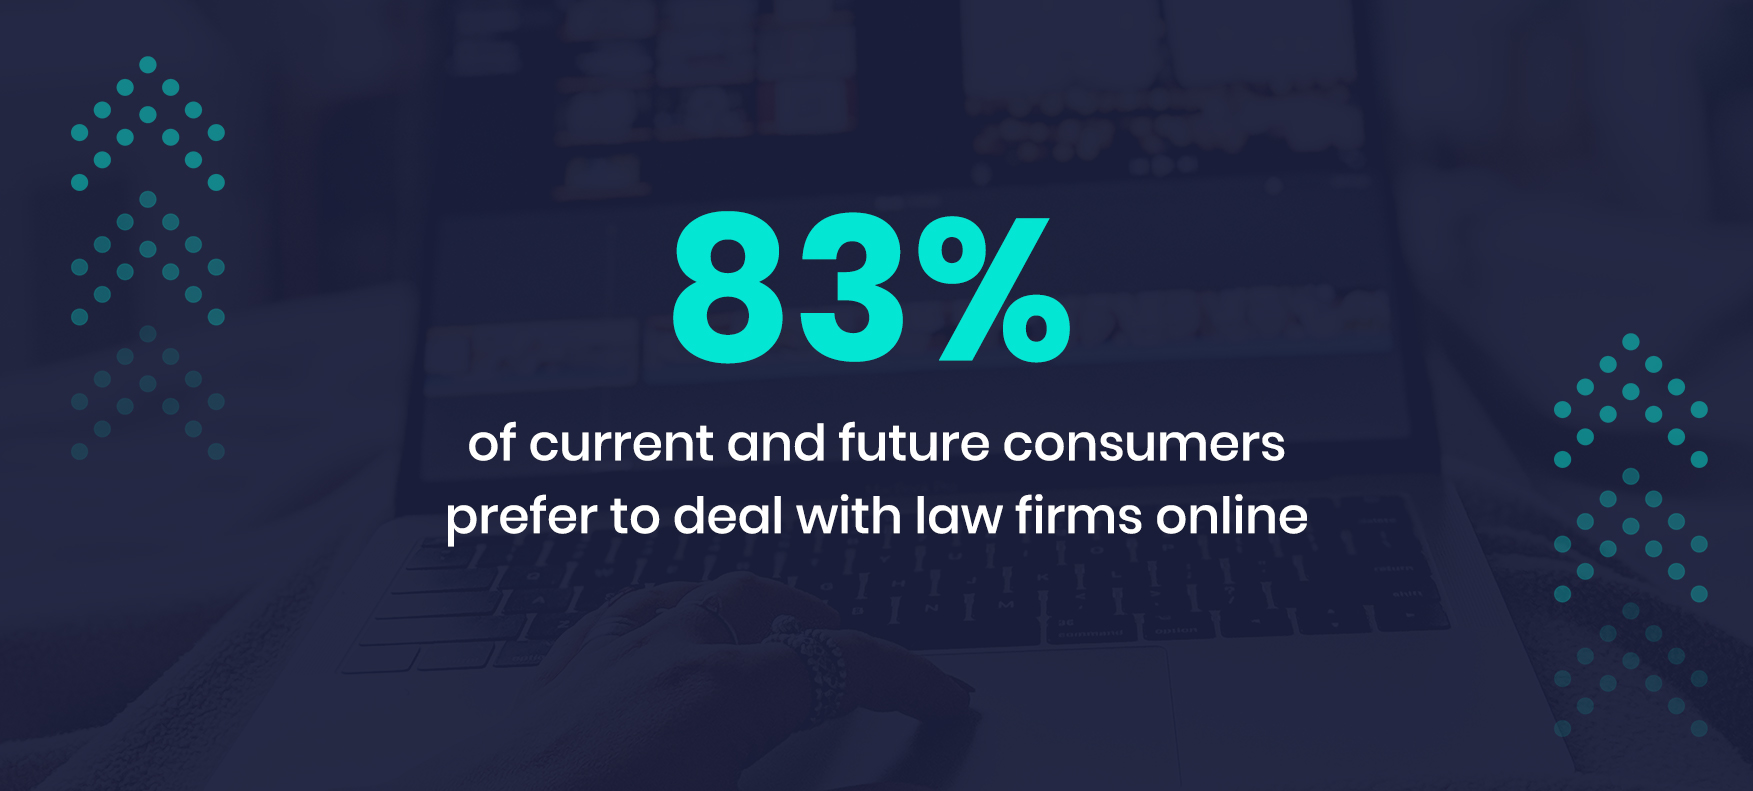 83% of current and future consumers prefer to deal with law firms online